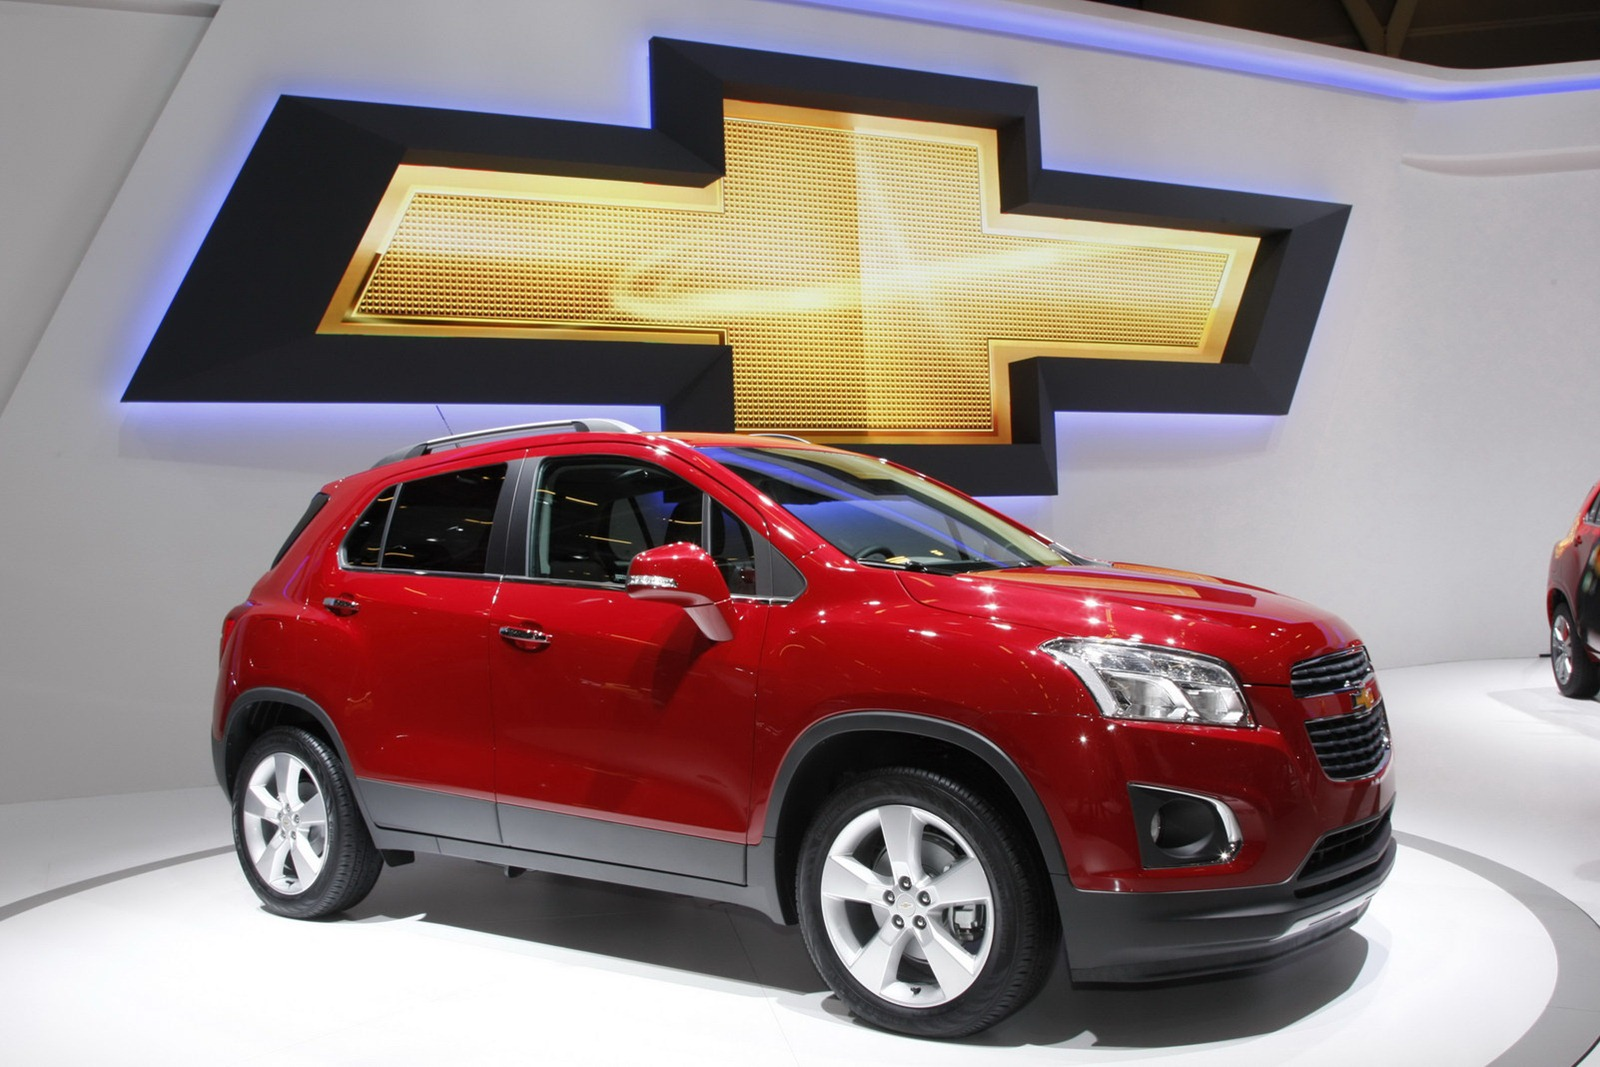 new car launched by chevrolet in indiaGM to Launch up to 8 New Models in India